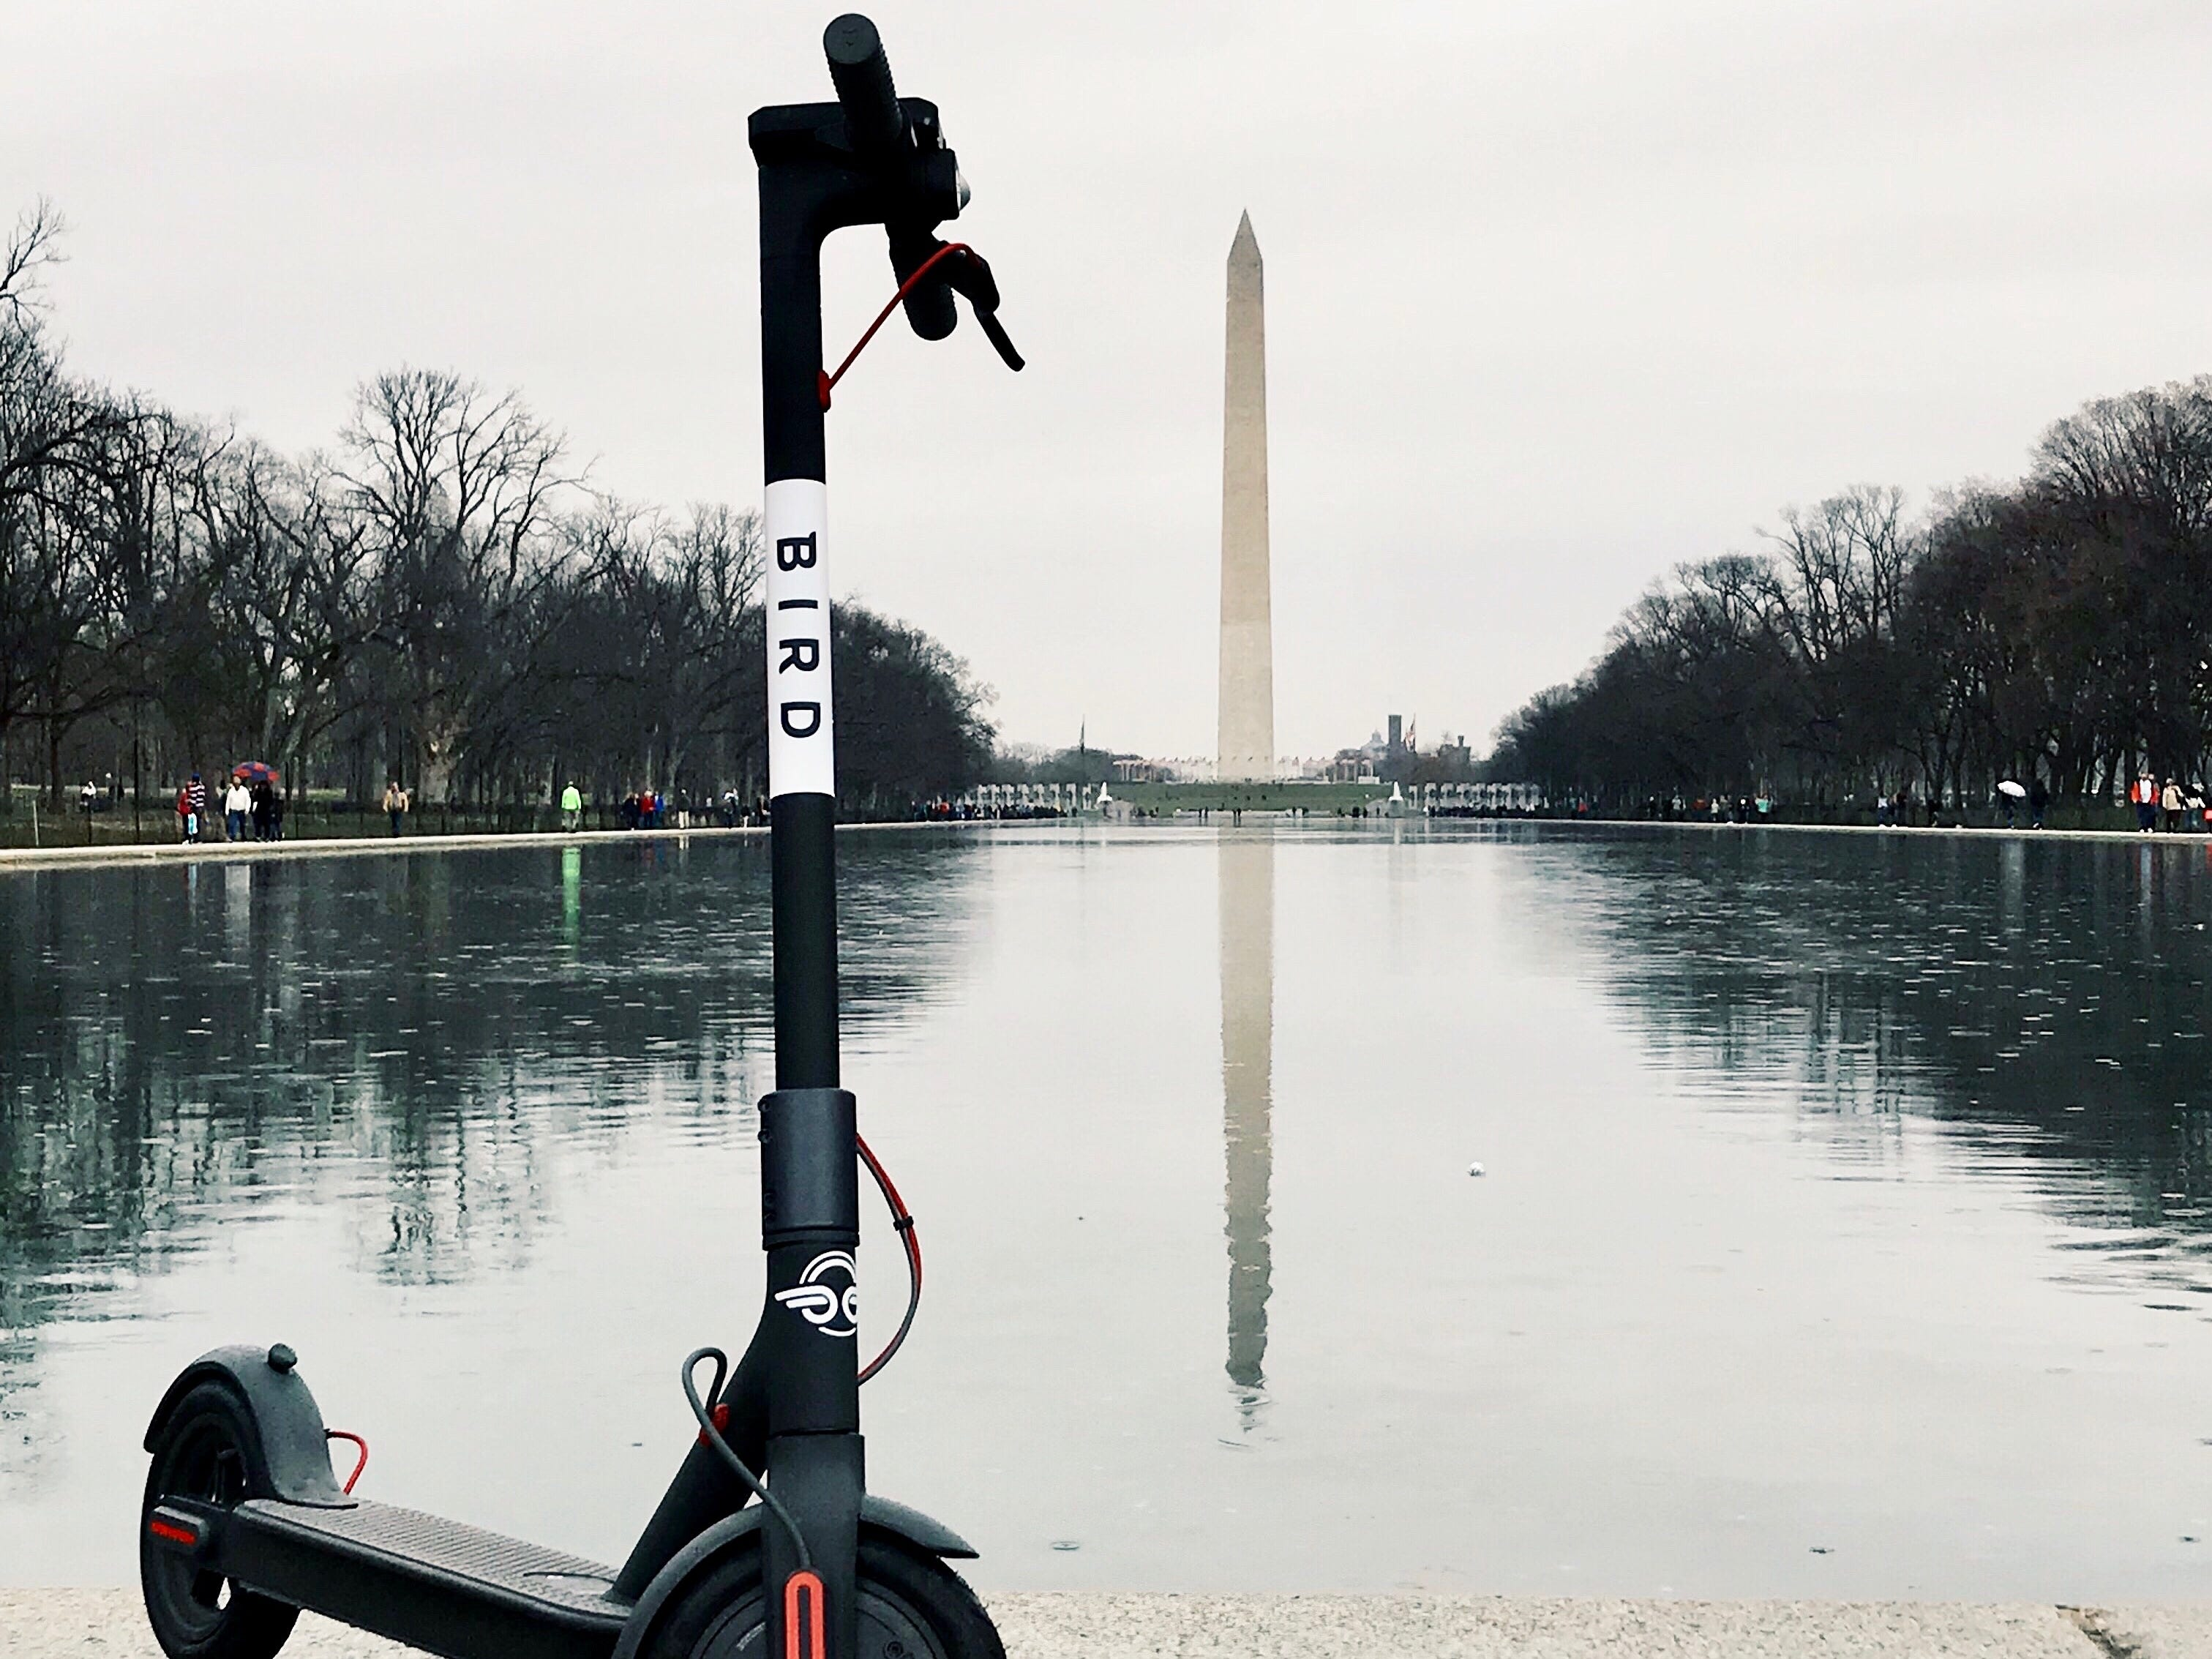 Already home to a popular bike-share program, Washington, D.C., has gone all-in for scooters.